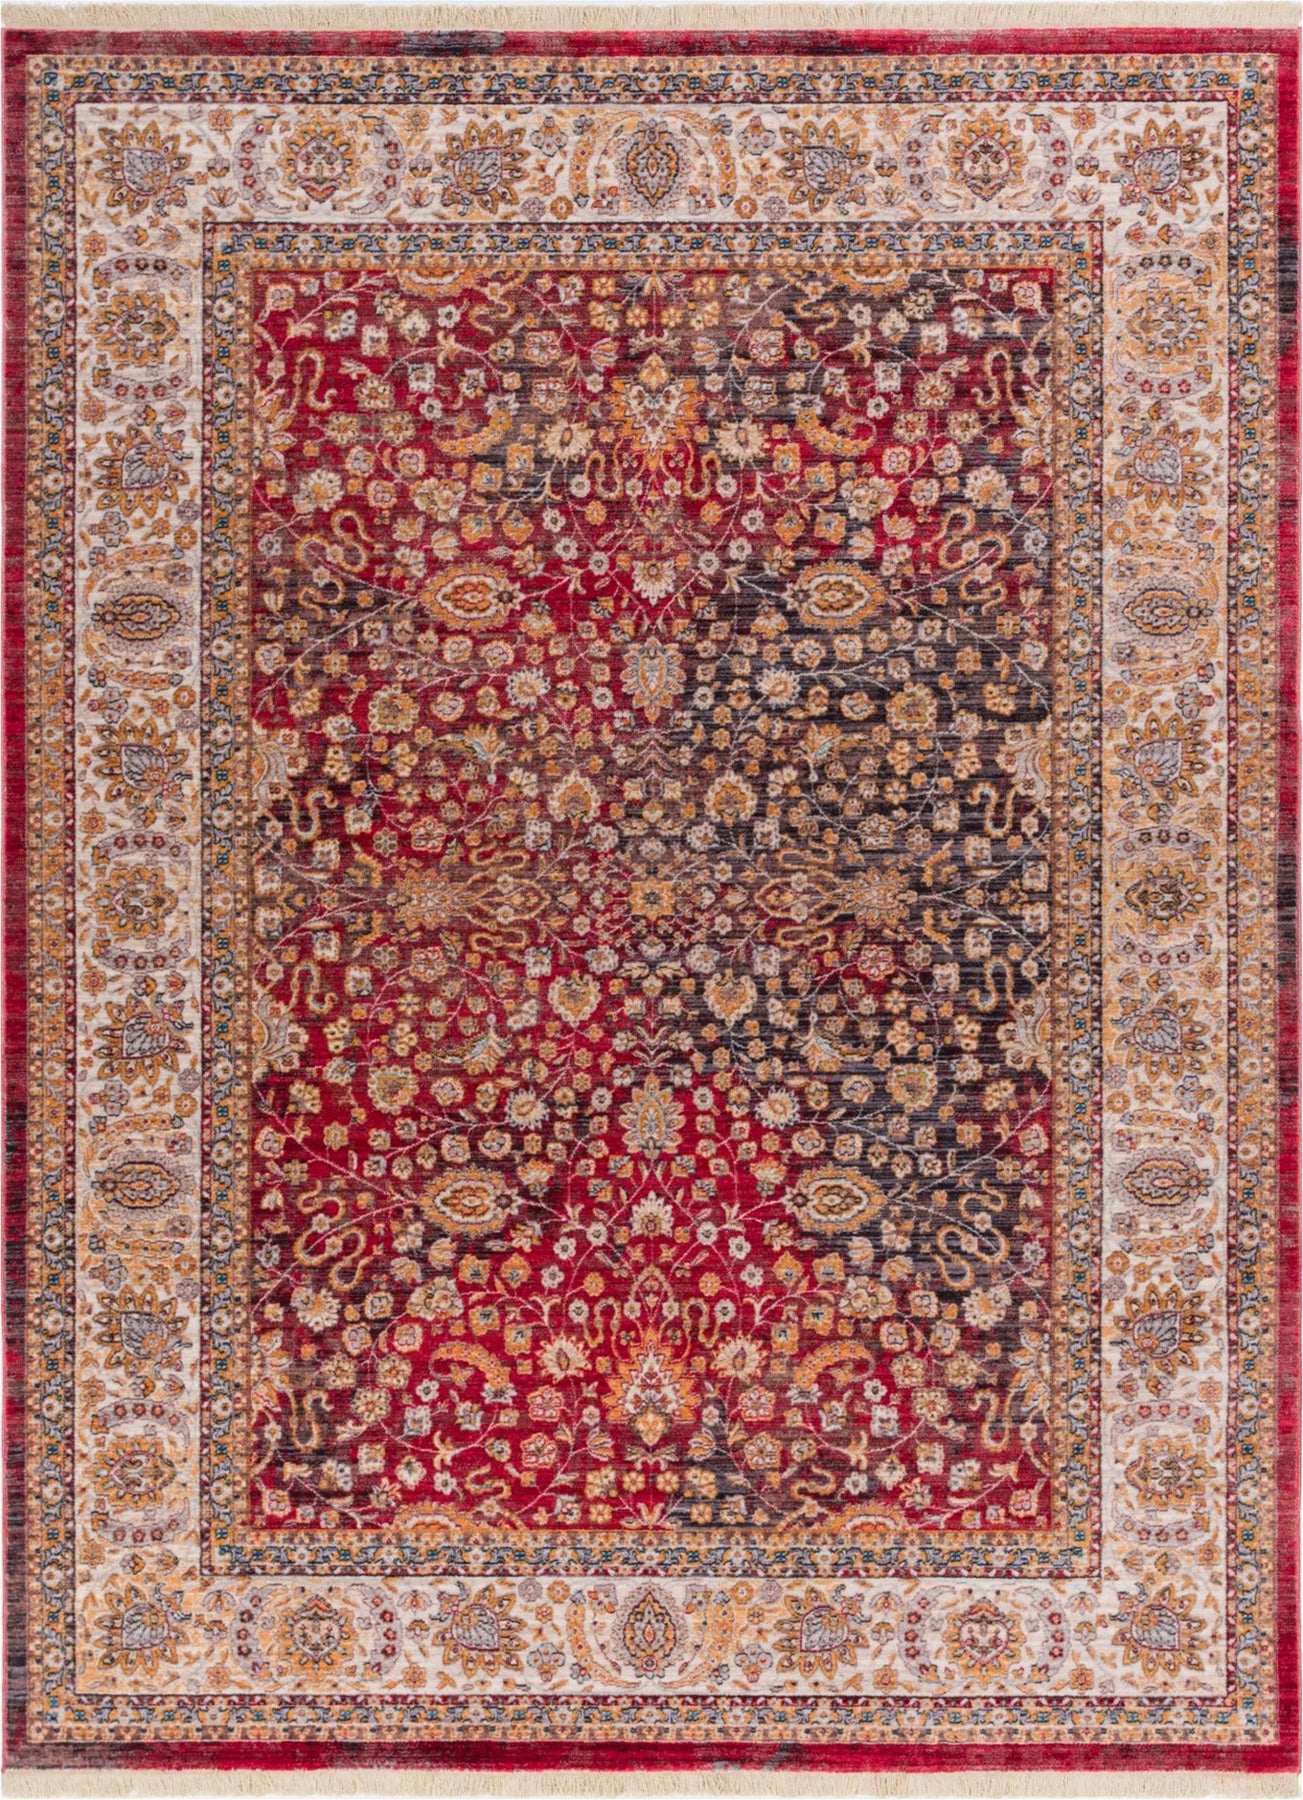 Well Woven's Emile Red Vintage rug.